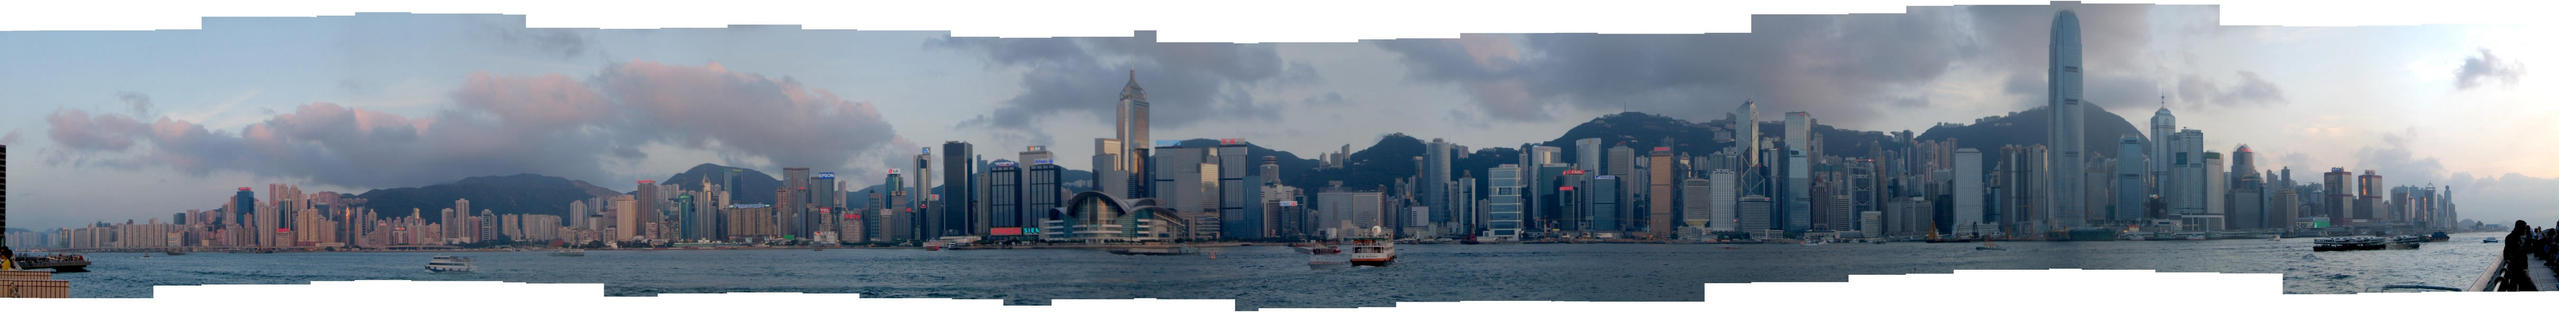 Victoria Harbour - 2 by johnchan